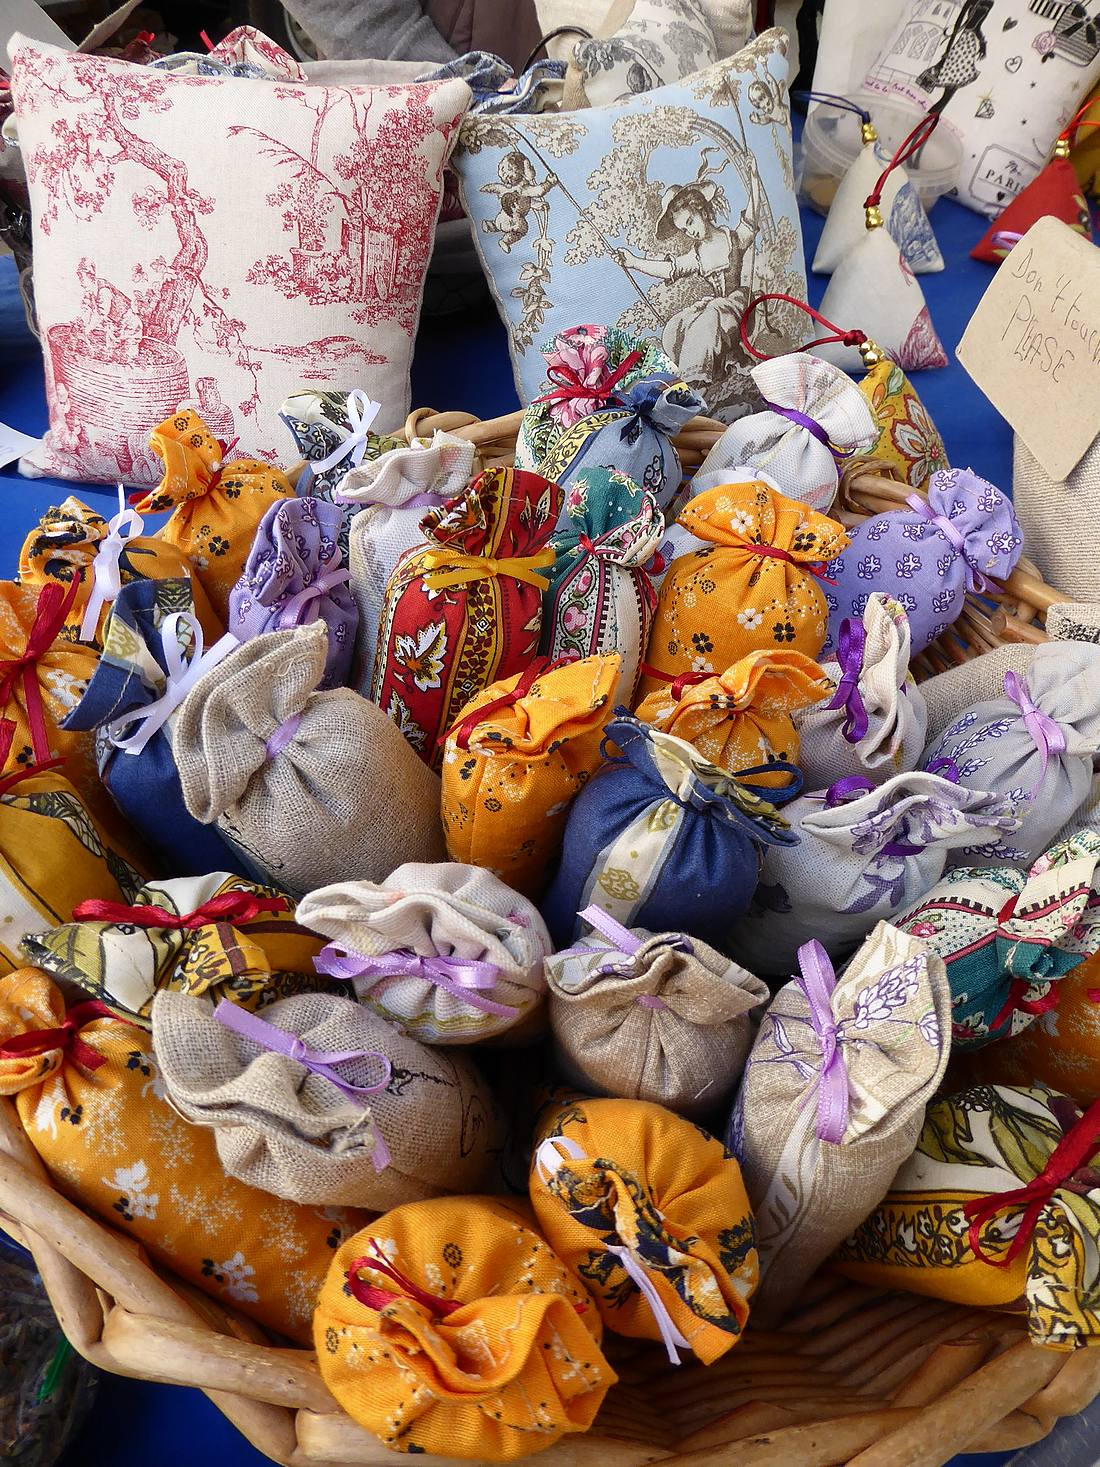 sachets of lavender at farmers' market in Aix-en-Provence